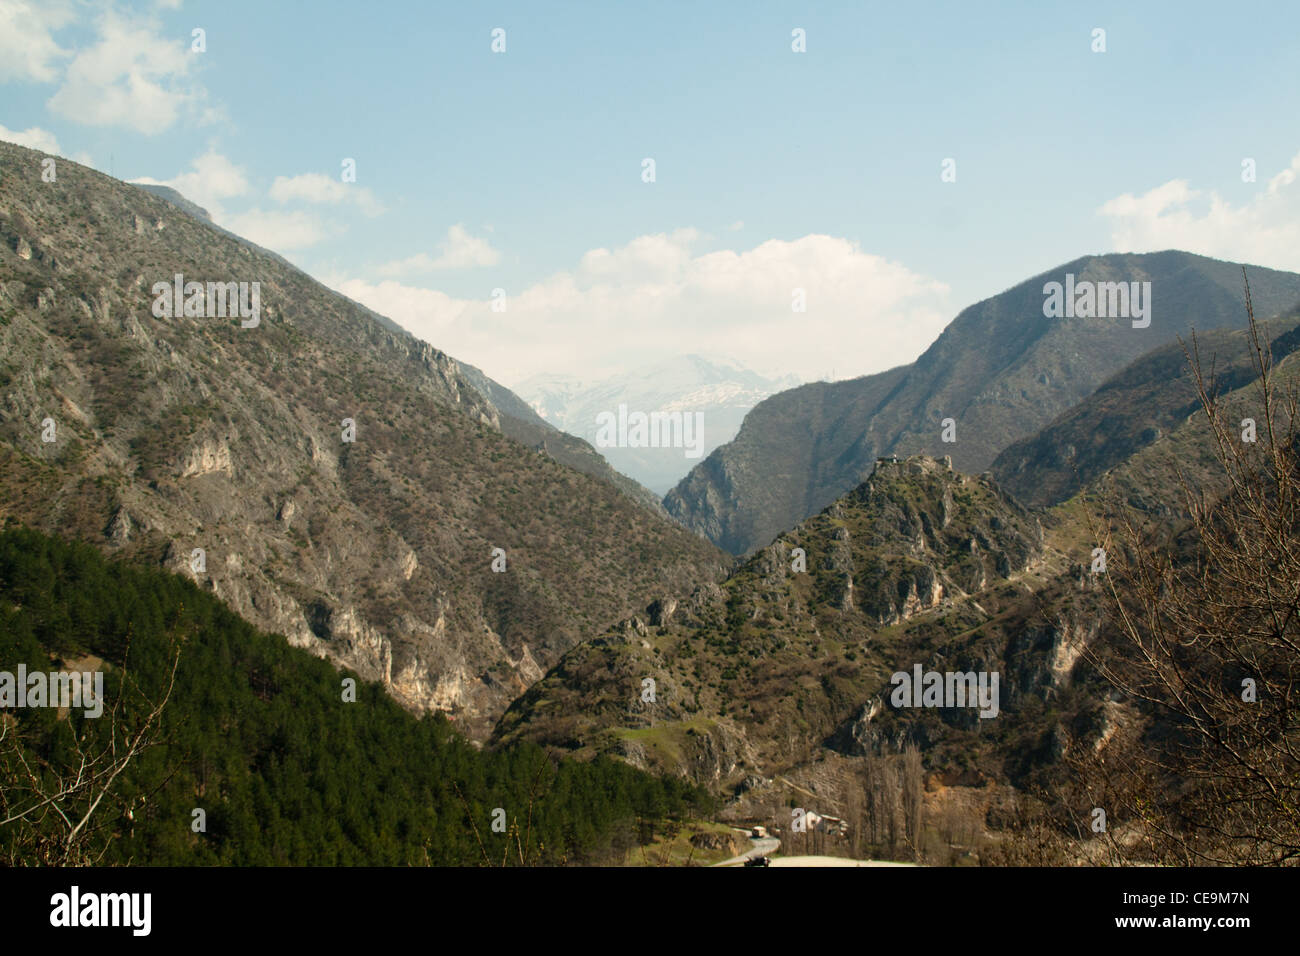 Landscape throught the mountains in Prizren, Kosovo - Stock Image